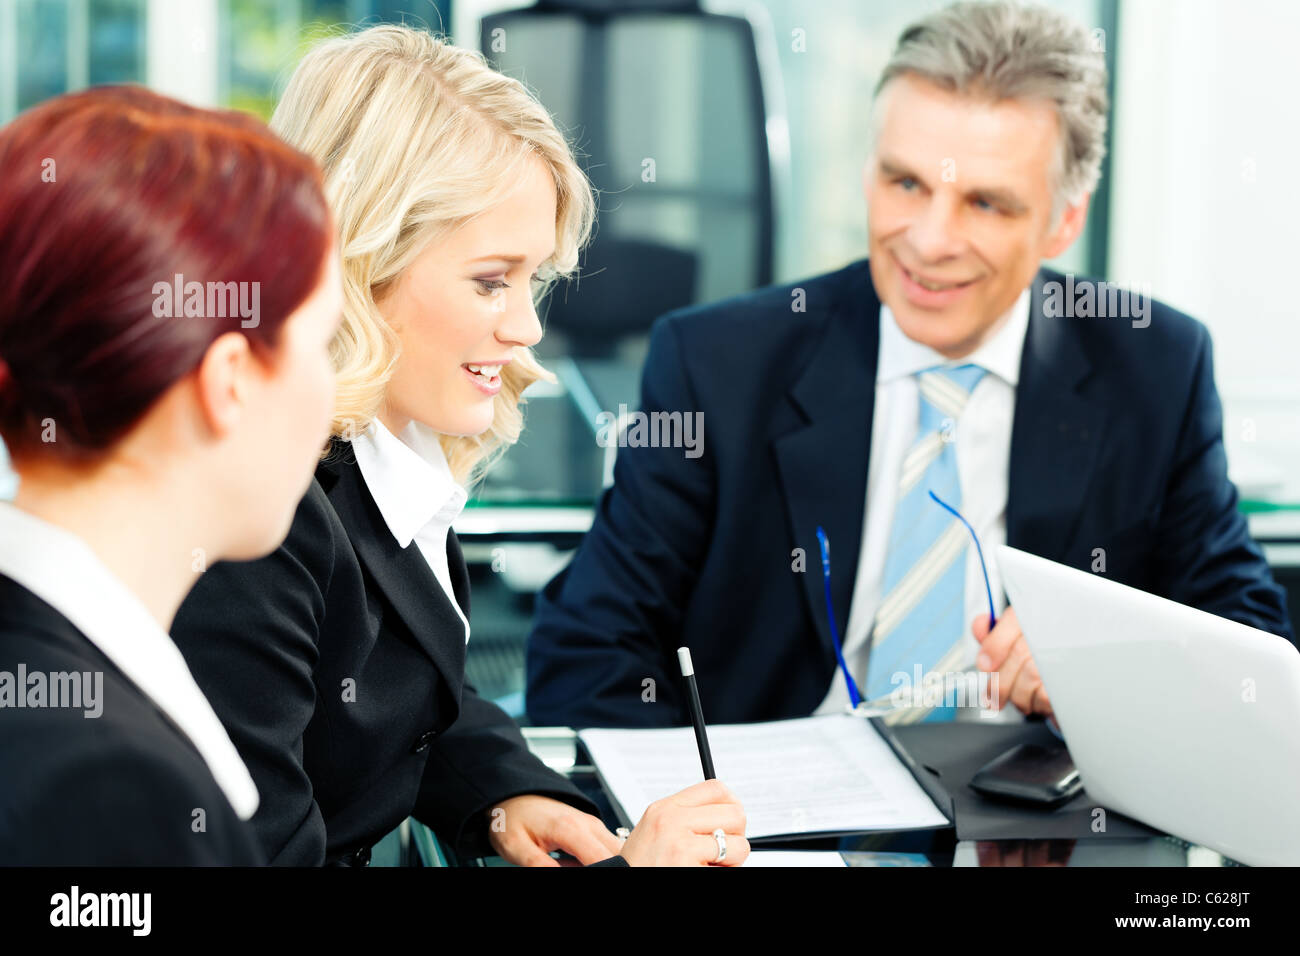 Business - meeting in an office; the businesspeople are discussing a document - Stock Image